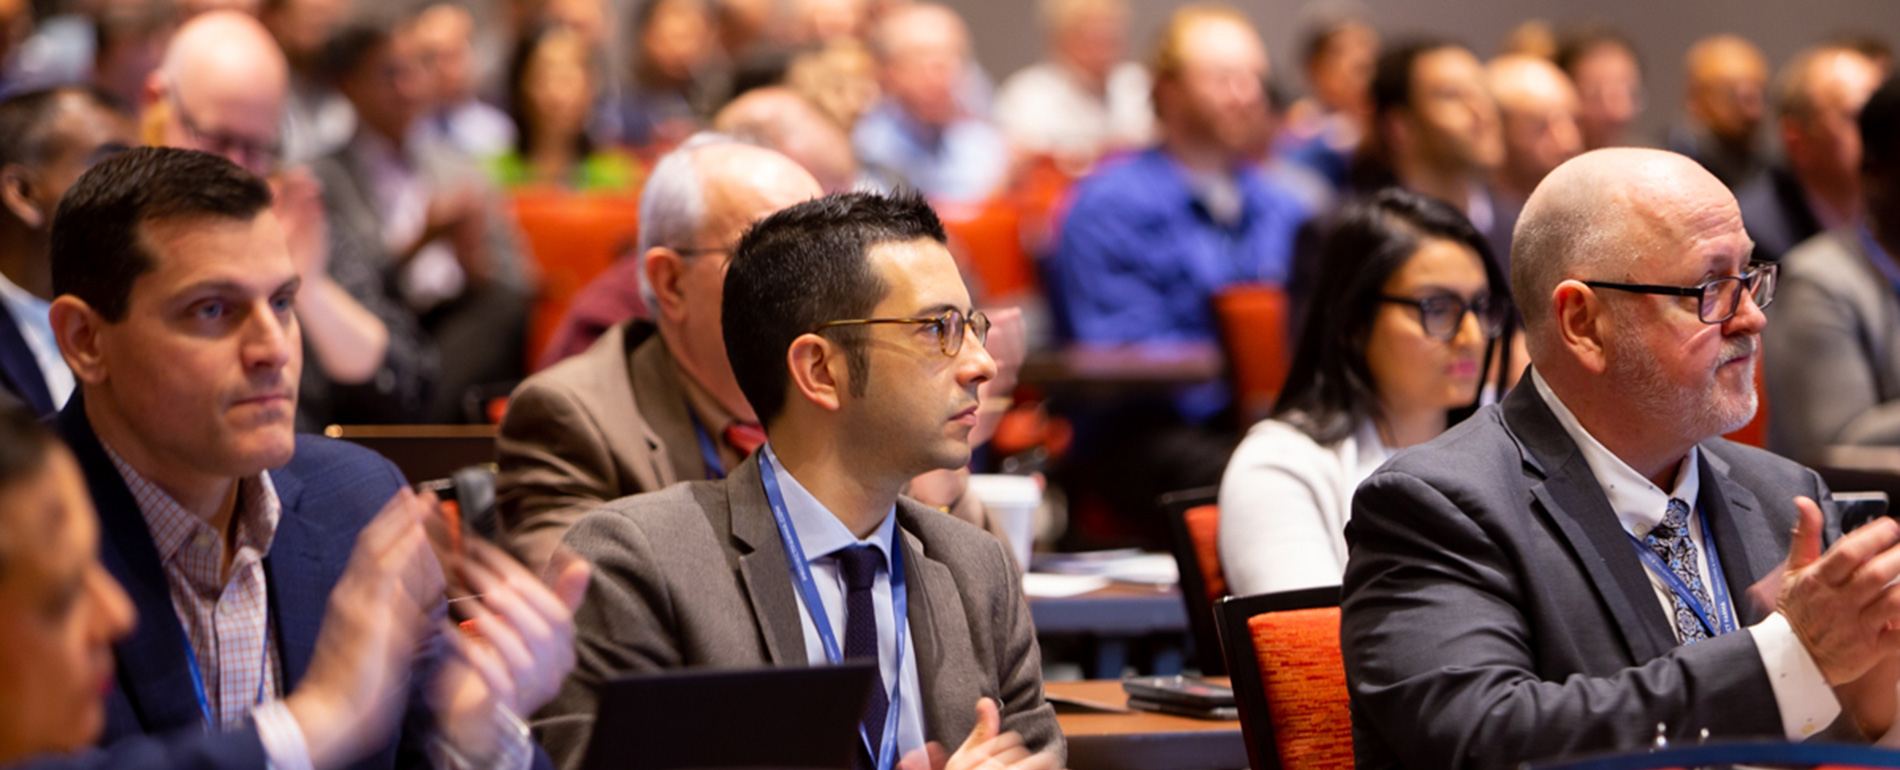 2019 ISPE Aseptic Conference - Event Banner Image